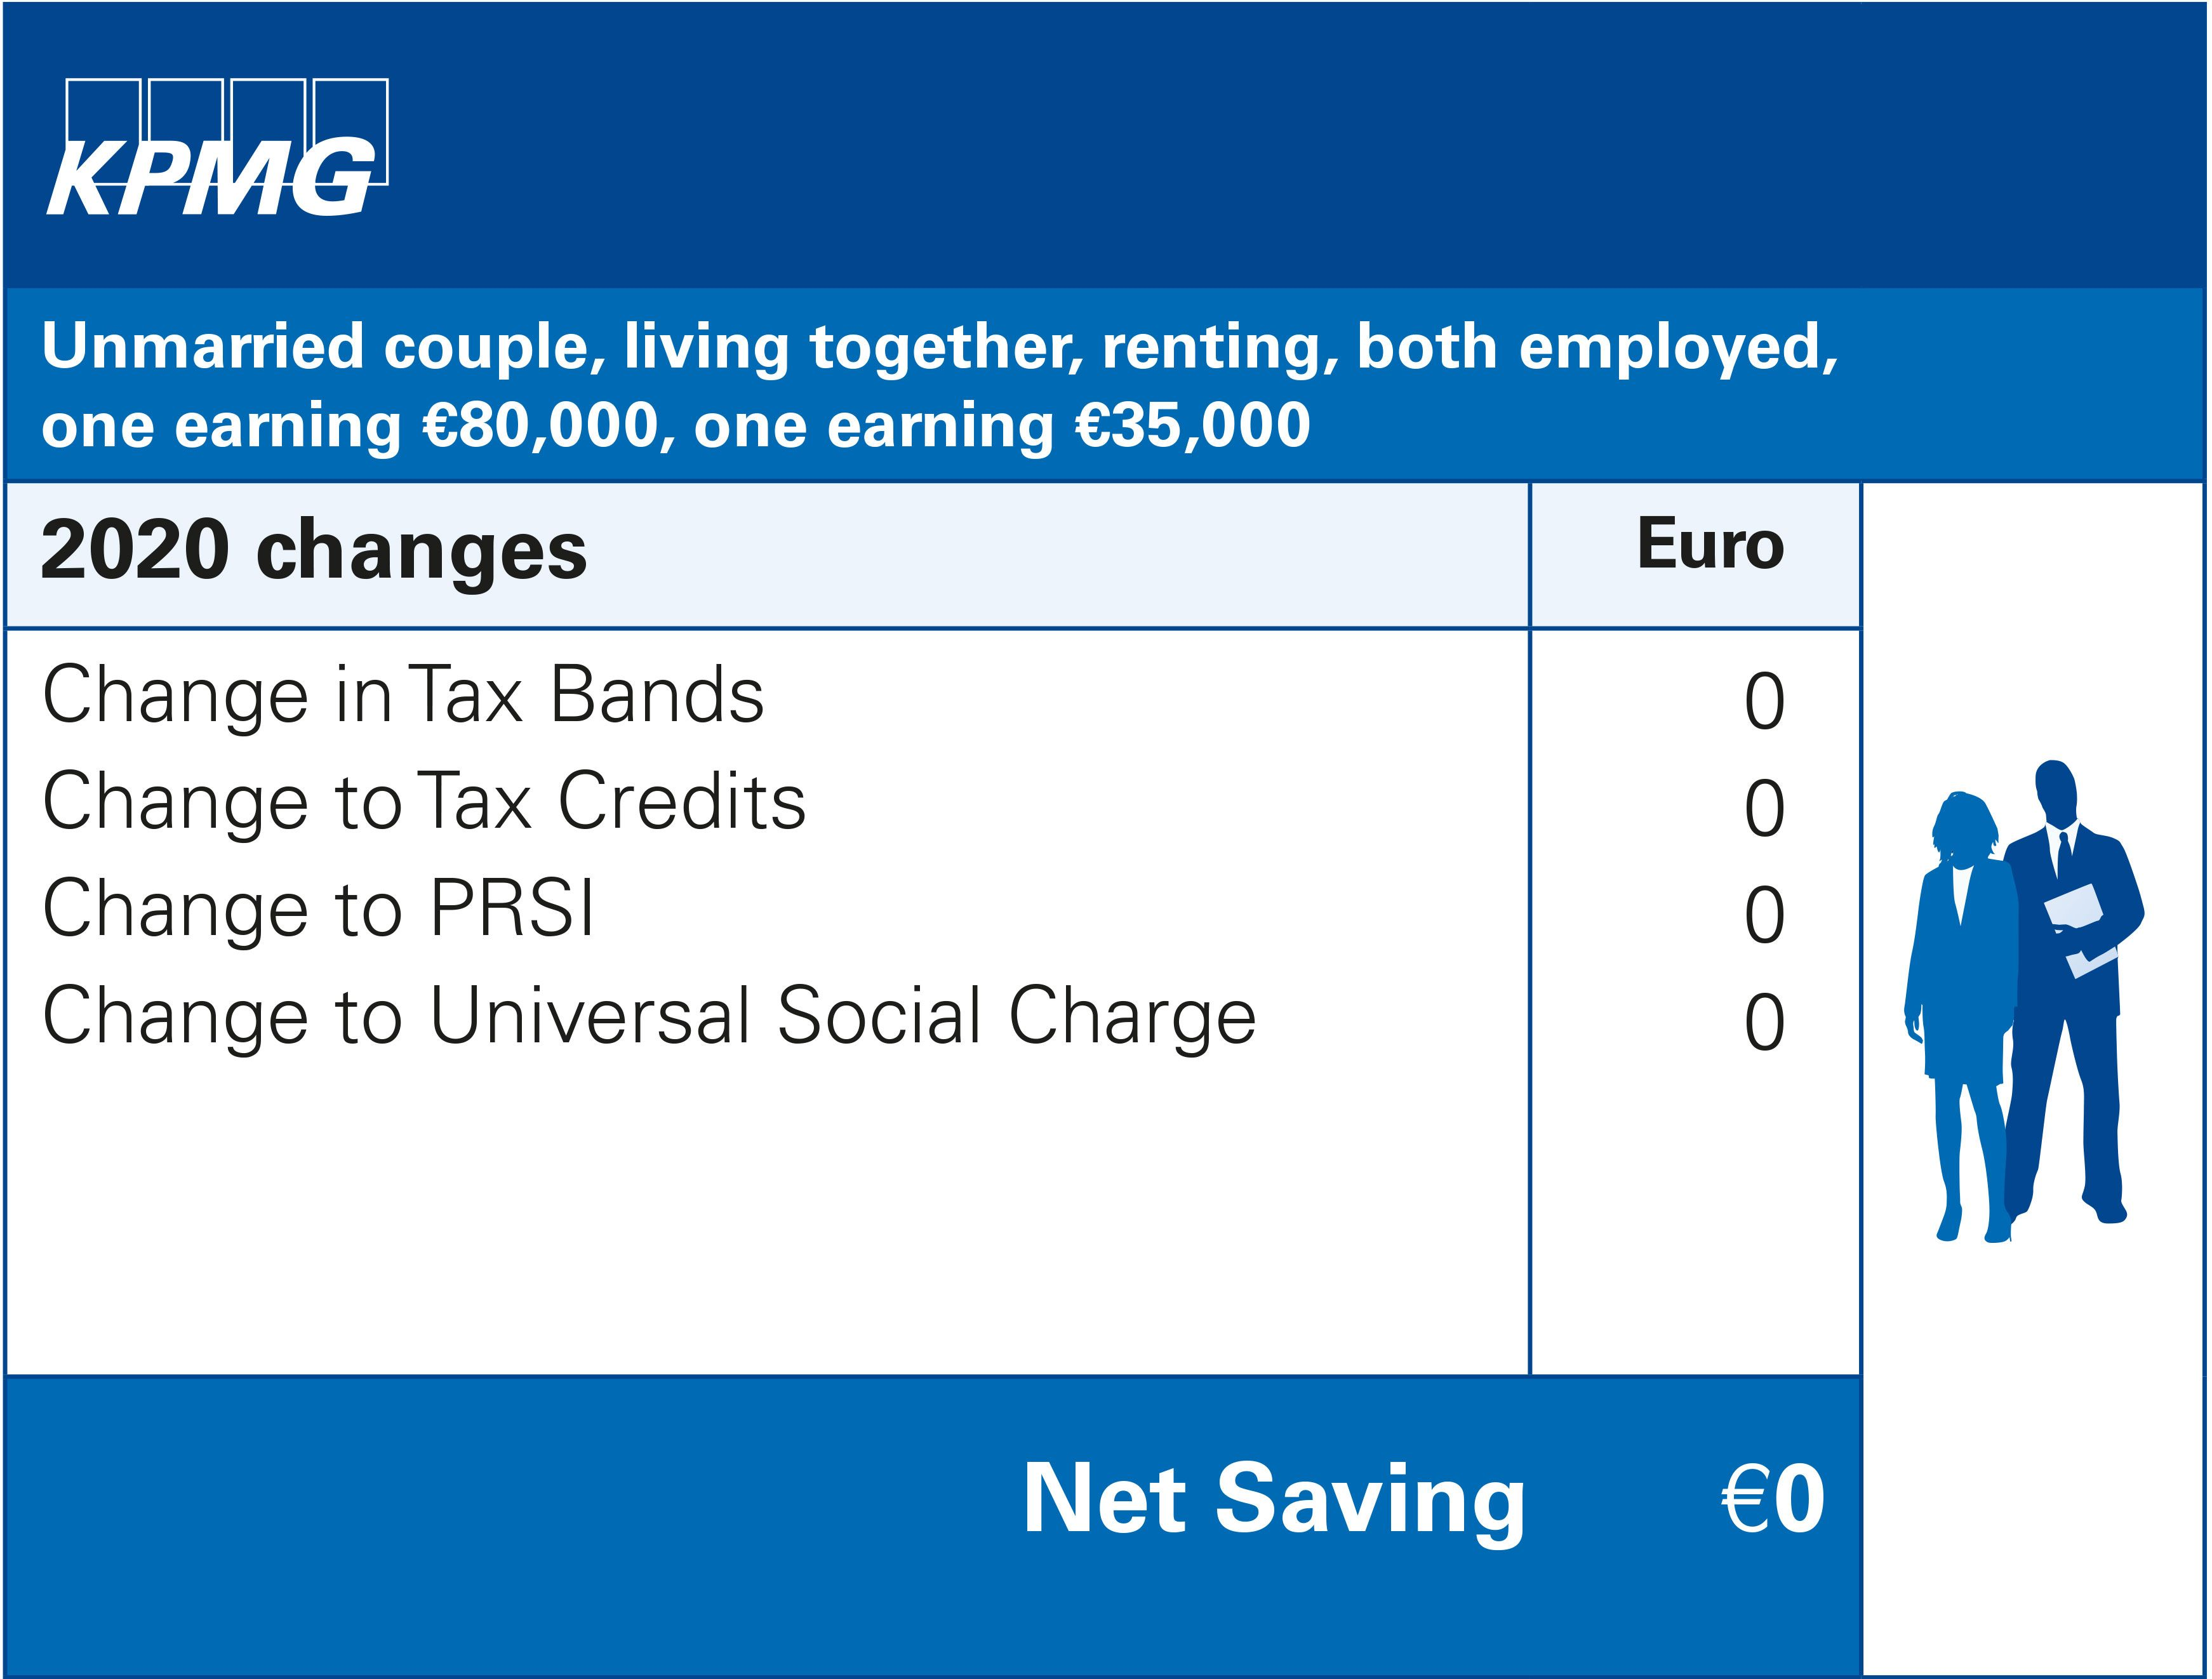 Unmarried couple, living together, both employed, one earning €80,000, one earning €35,000